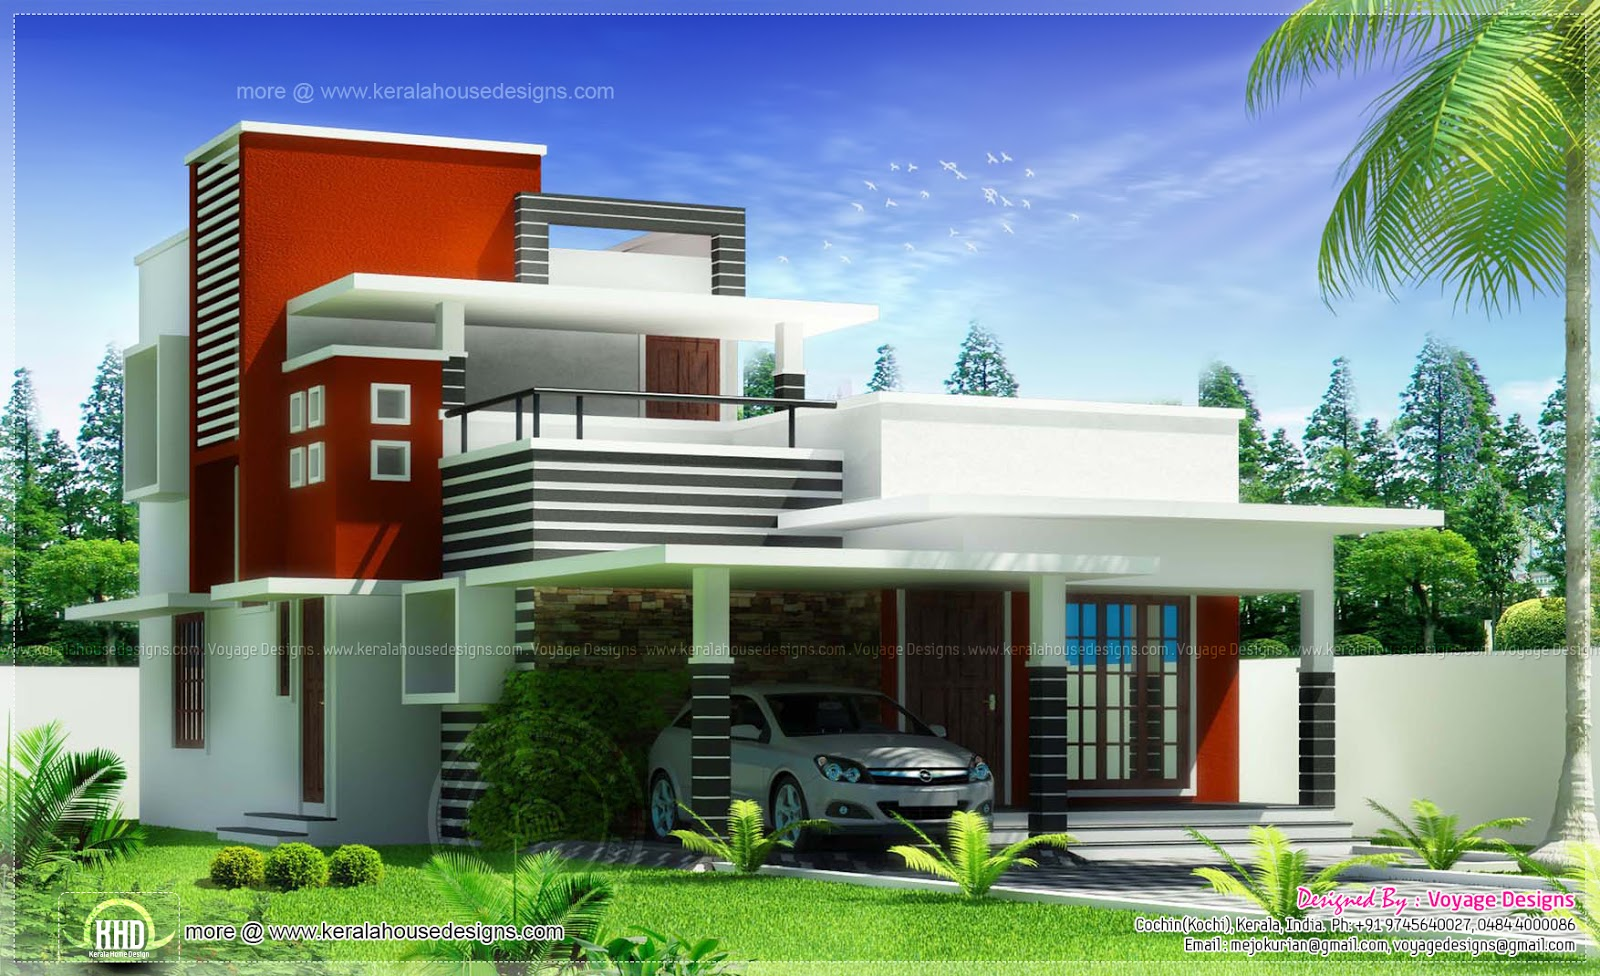 3 bed room contemporary style house kerala home design for Contemporary style homes in kerala